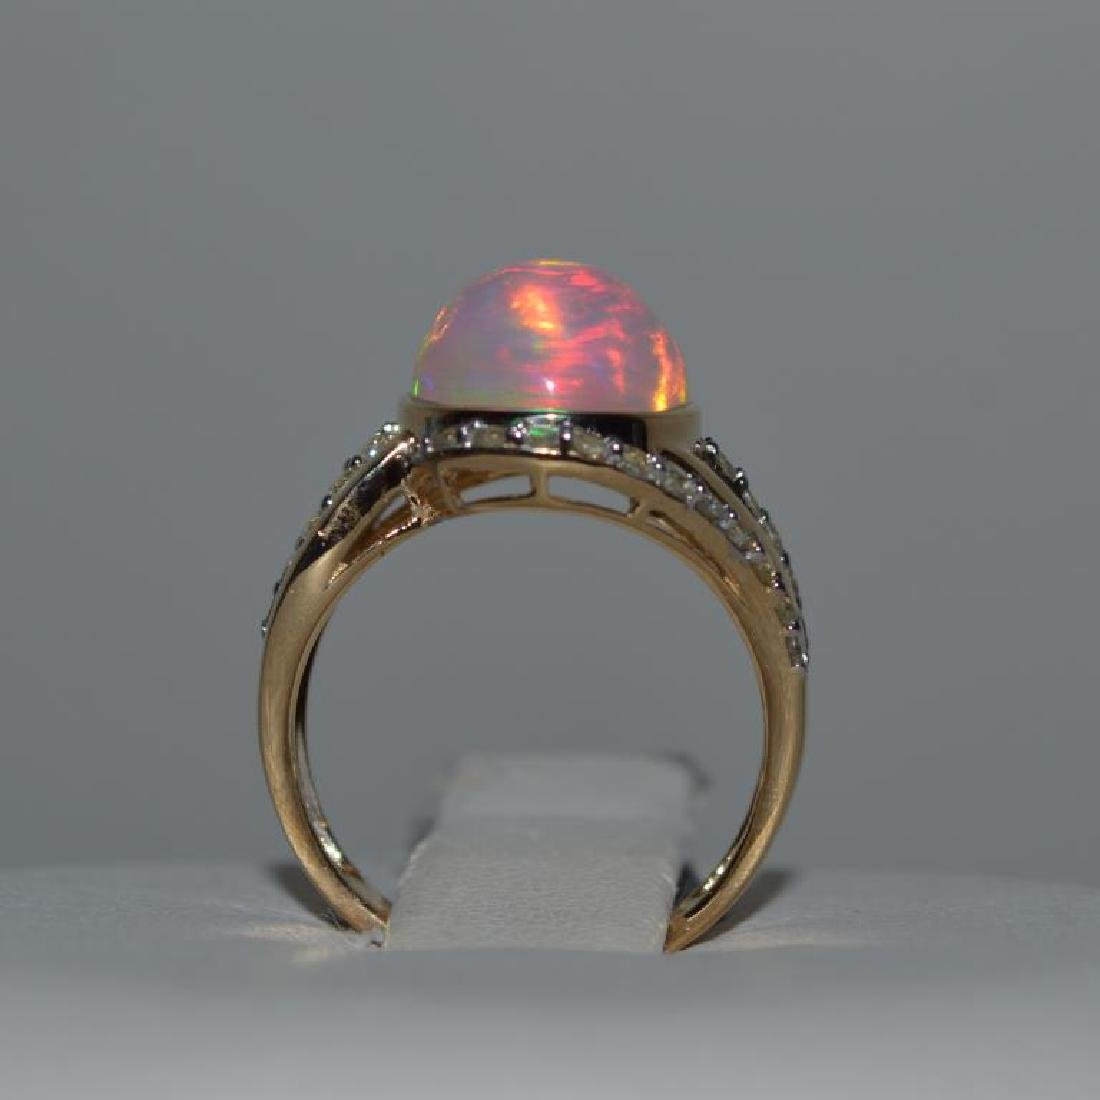 14kt yellow gold opal and diamond ring - 4